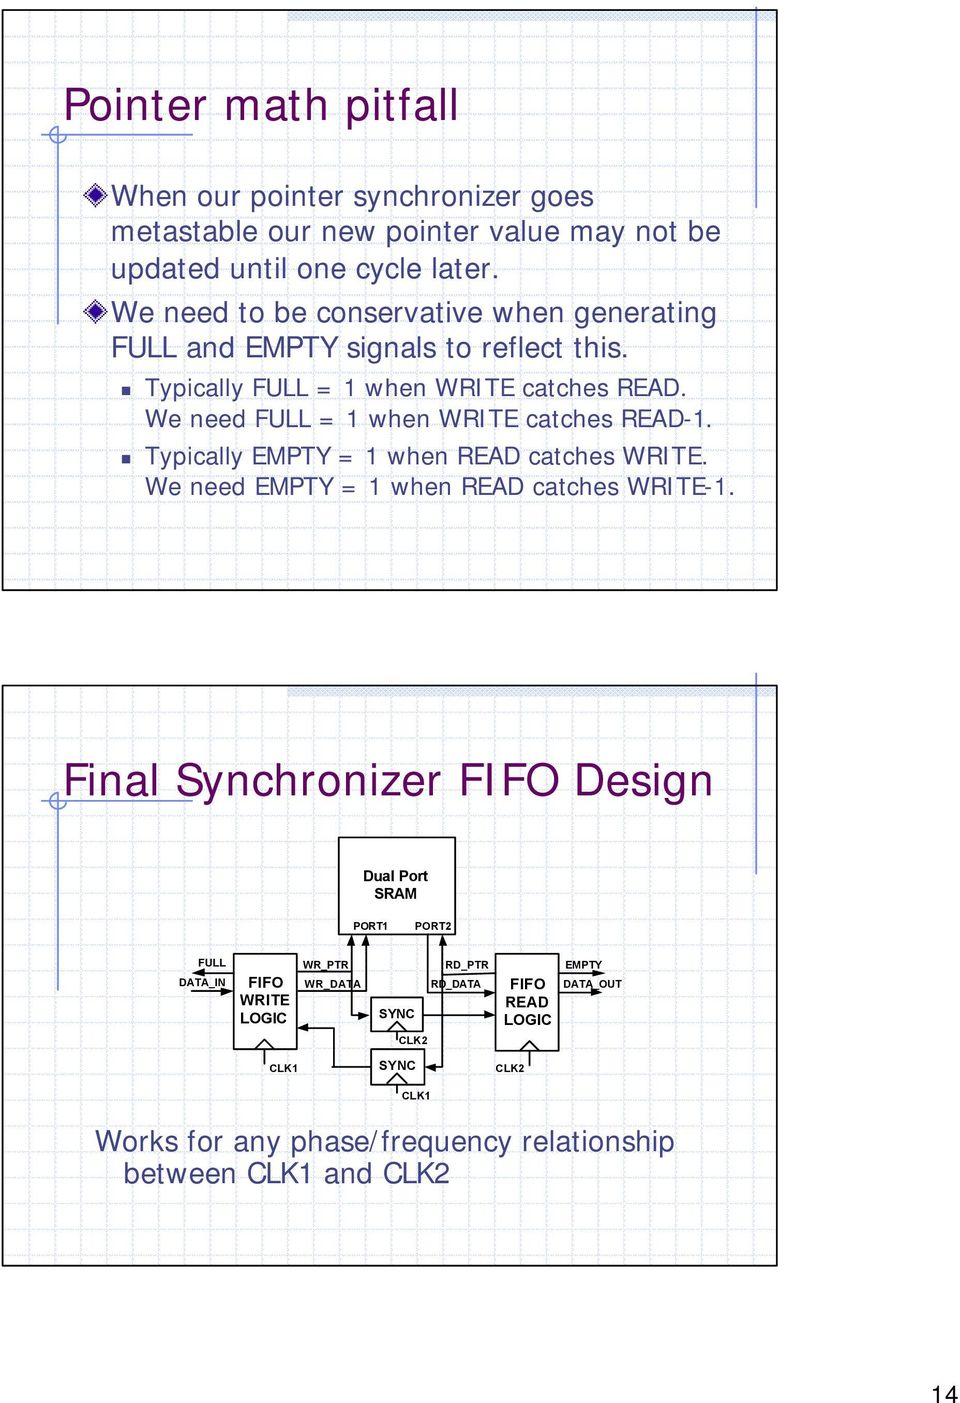 Synchronization In Digital Logic Circuits Why Care How To Read A Diagram We Need Full 1 When Write Catches Typically Empty